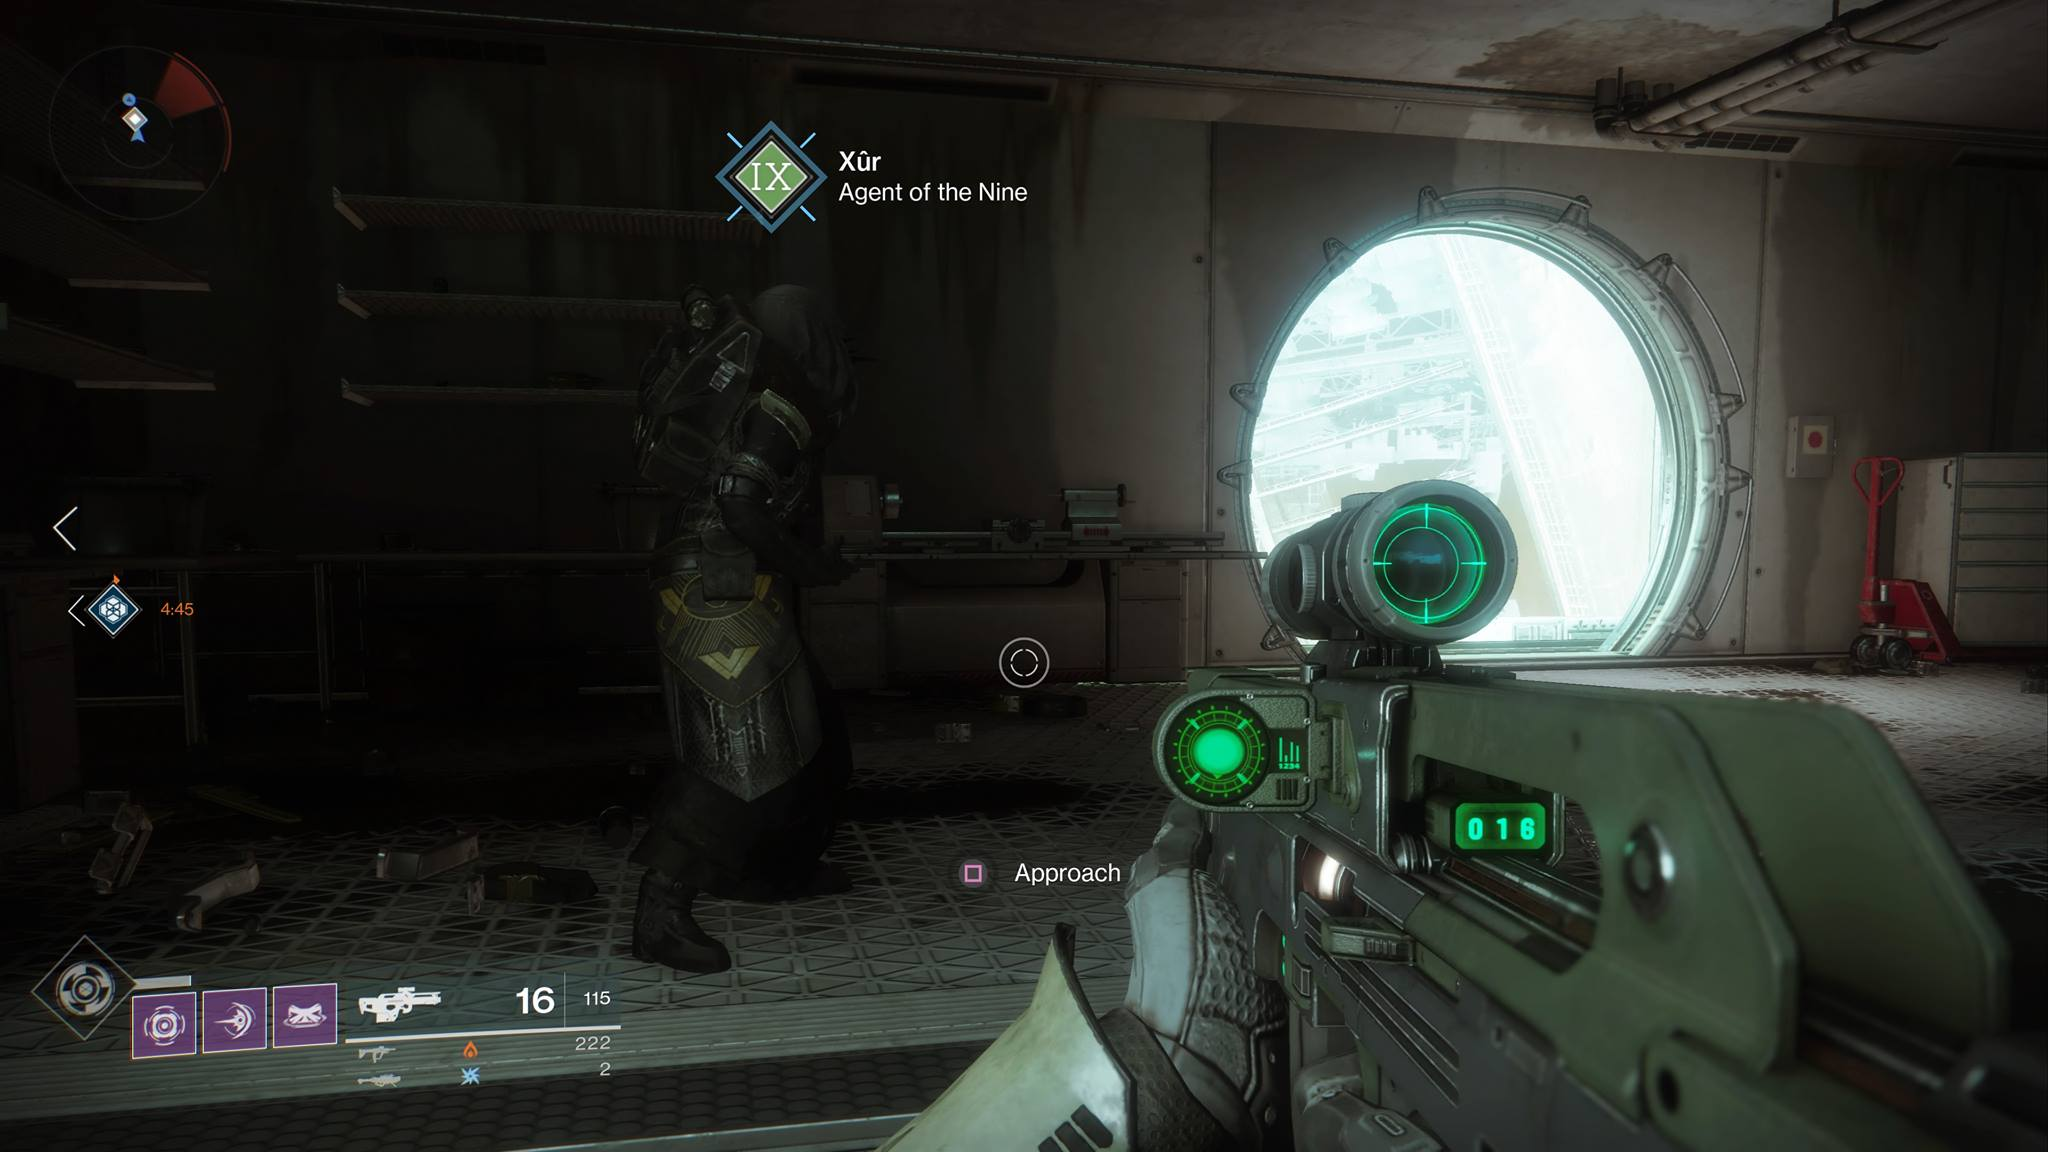 Destiny 2: Xur Location And Inventory For October 20-24